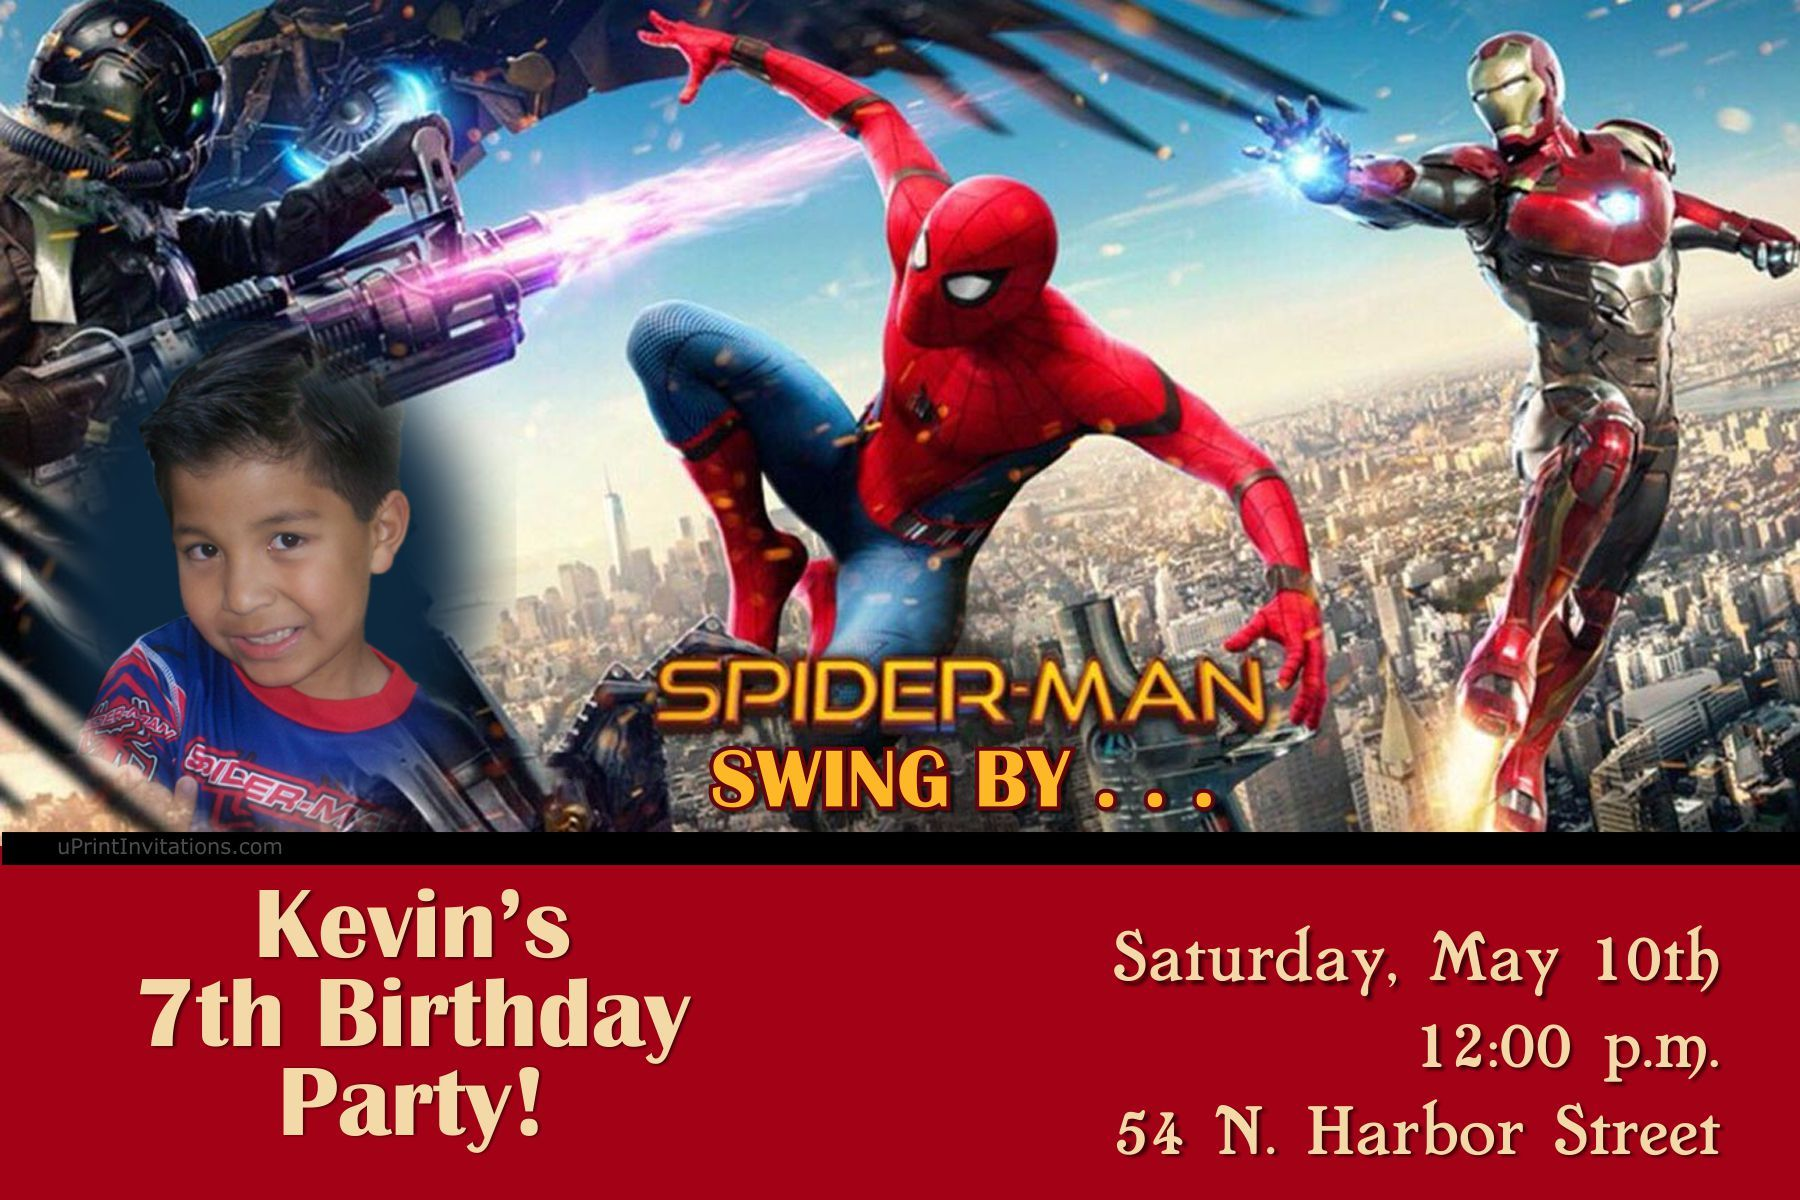 Spiderman homecoming birthday invitations digital download get spiderman homecoming birthday invitations digital download get these invitations right now design yourself solutioingenieria Gallery